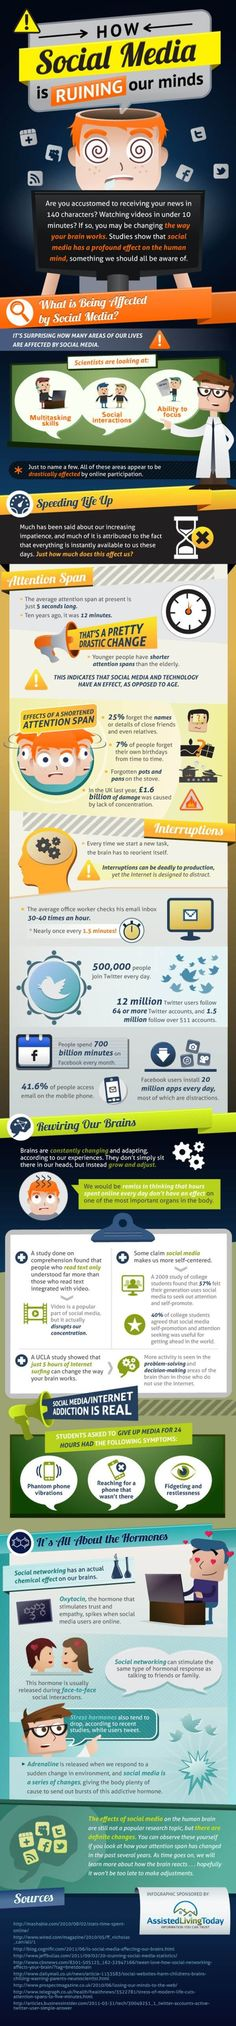 How #SocialMedia is running our minds. #Infographic